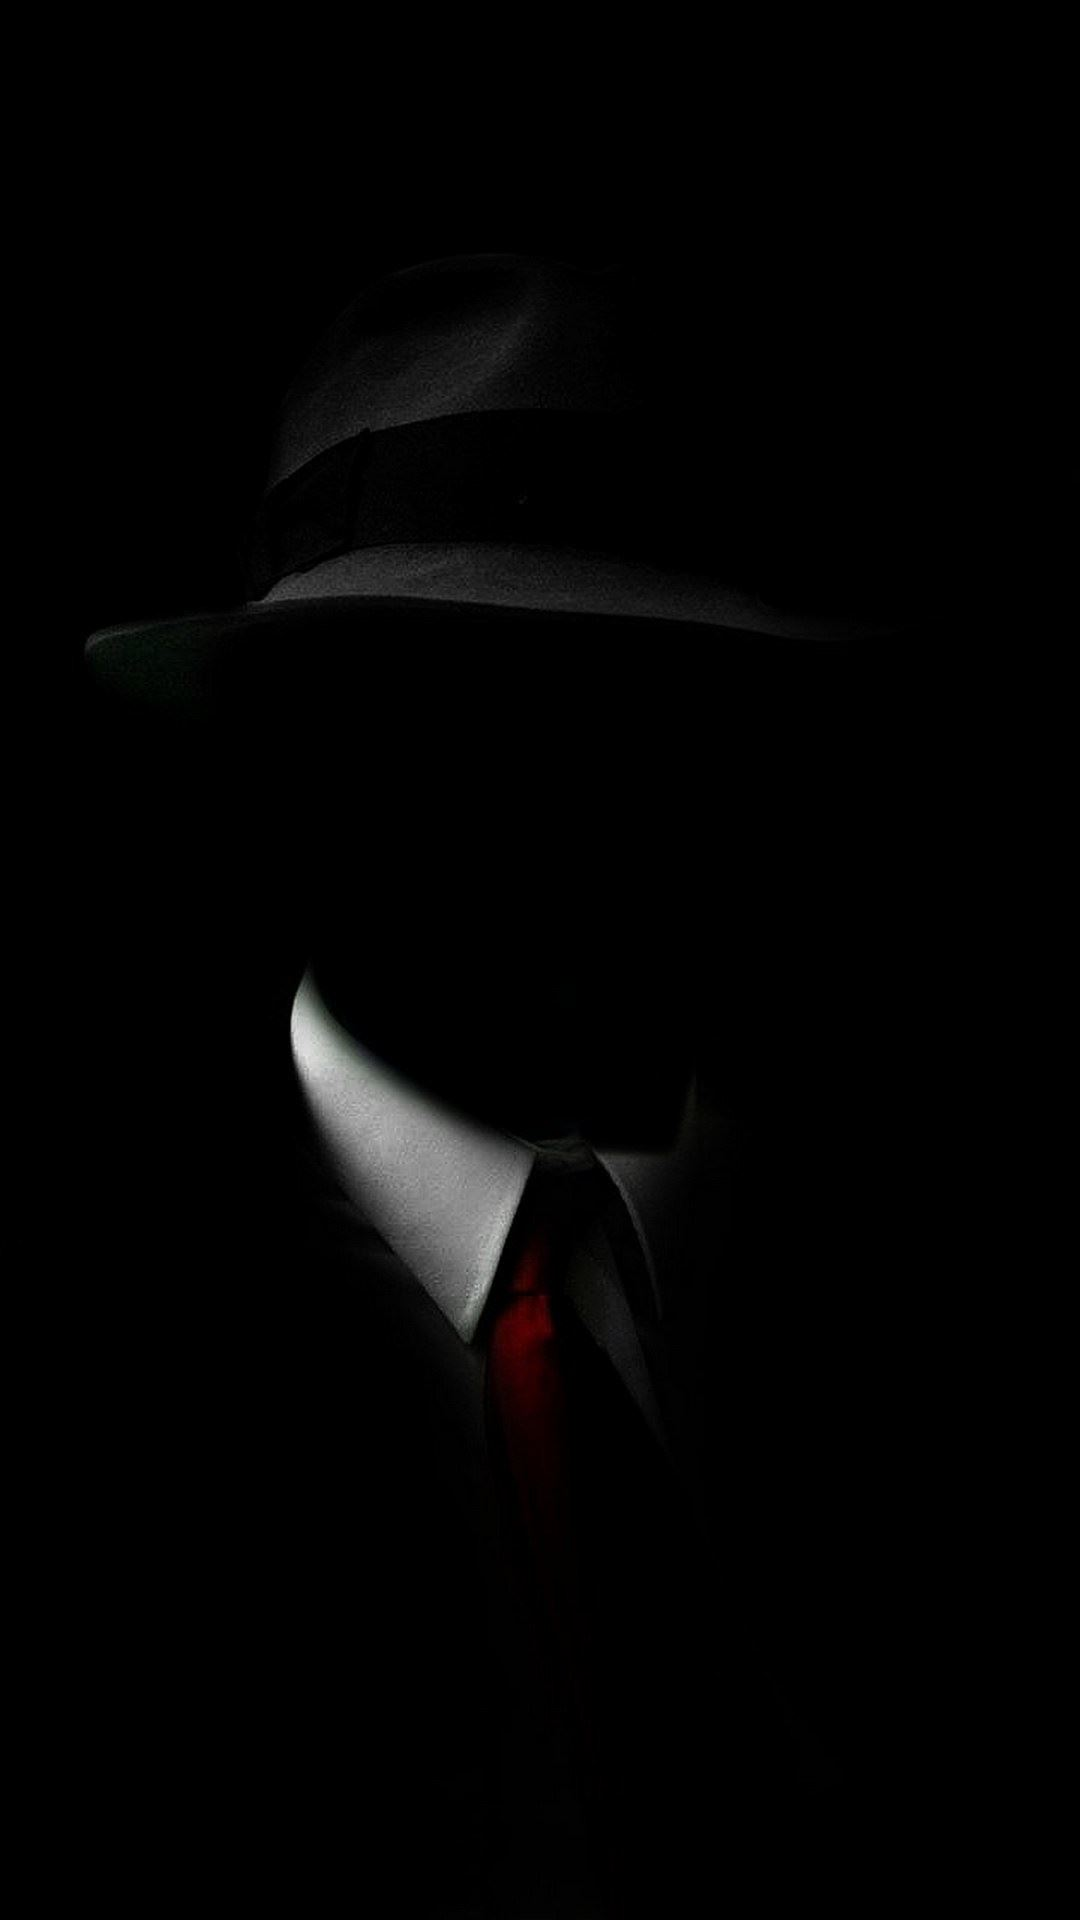 Black Suit Hat Red Tie iPhone 6 Wallpaper Download iPhone Wallpapers 1080x1920